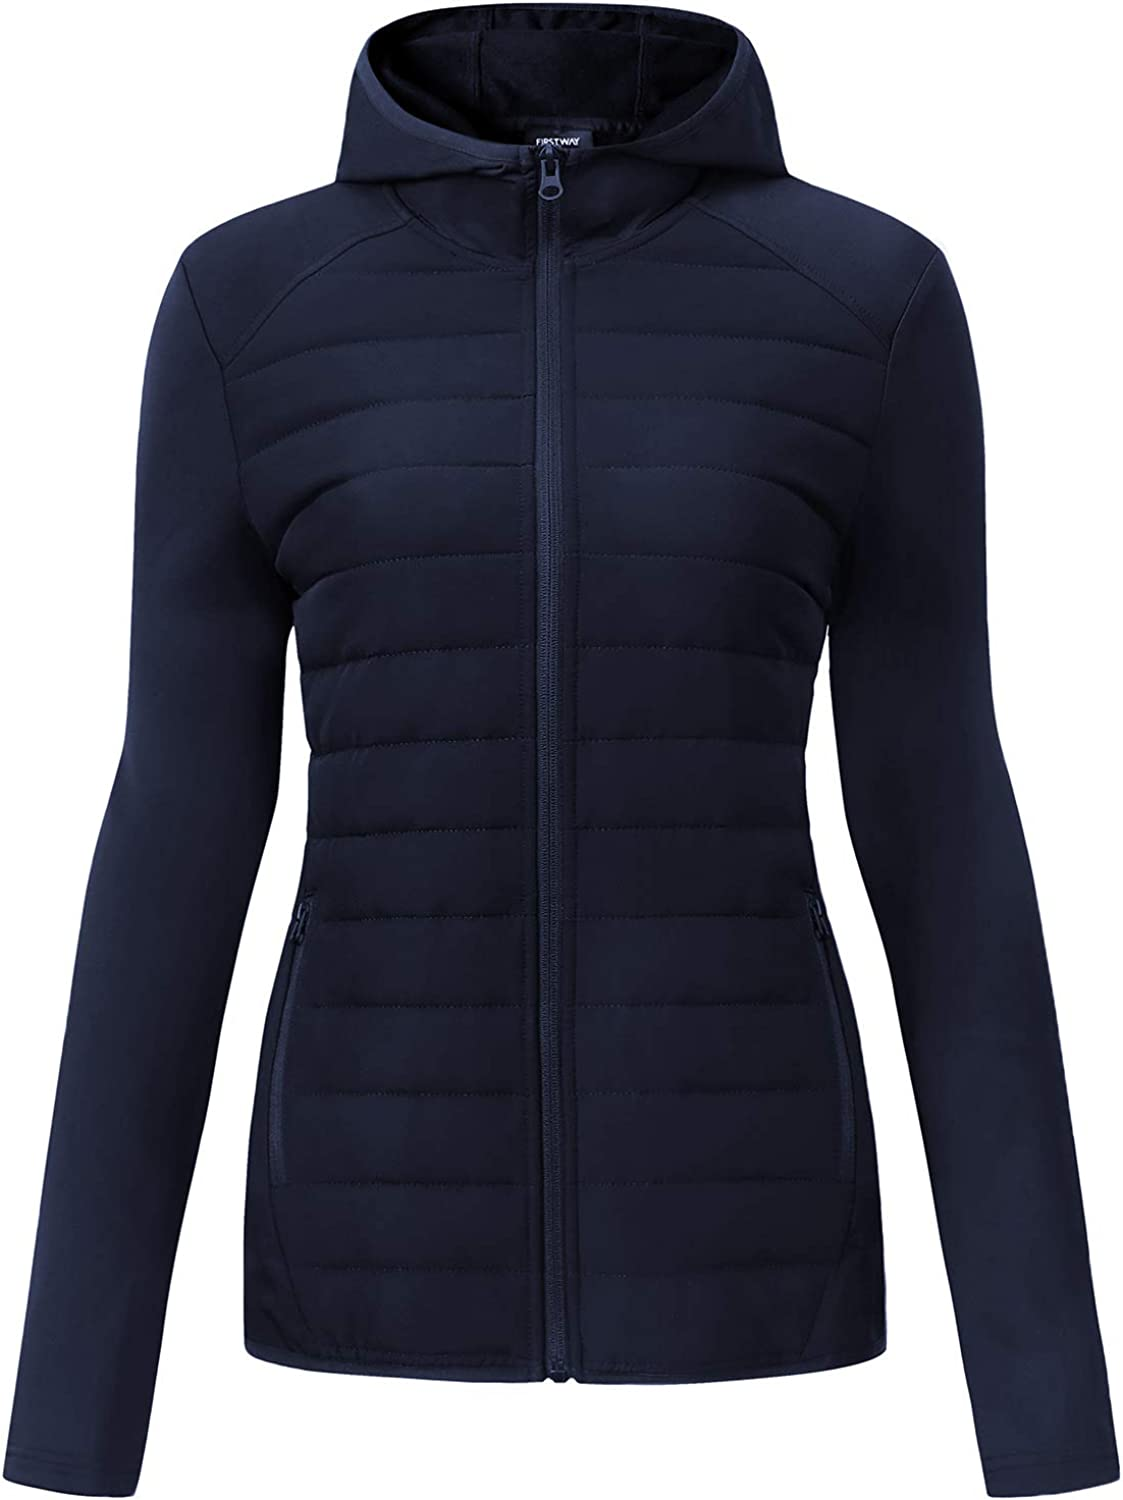 FIRST WAY Women's Quilted Soft Jackets Lightweight Hooded Full-Zip Long-Sleeve Outdoor Sports Workout Coats for Fall Winter